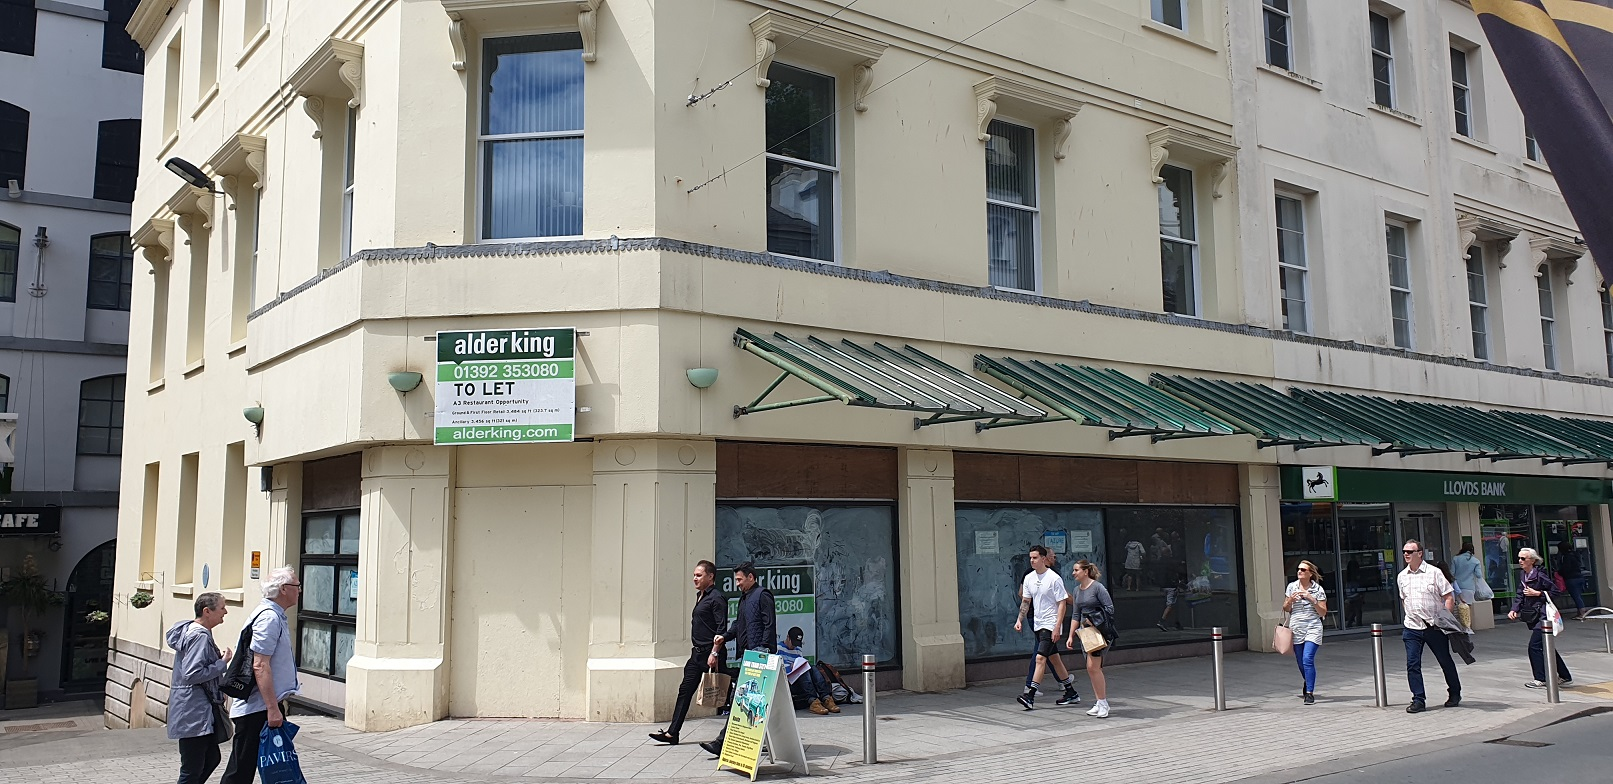 0 bed Shop for rent in Torquay. From Azure Property Consultants